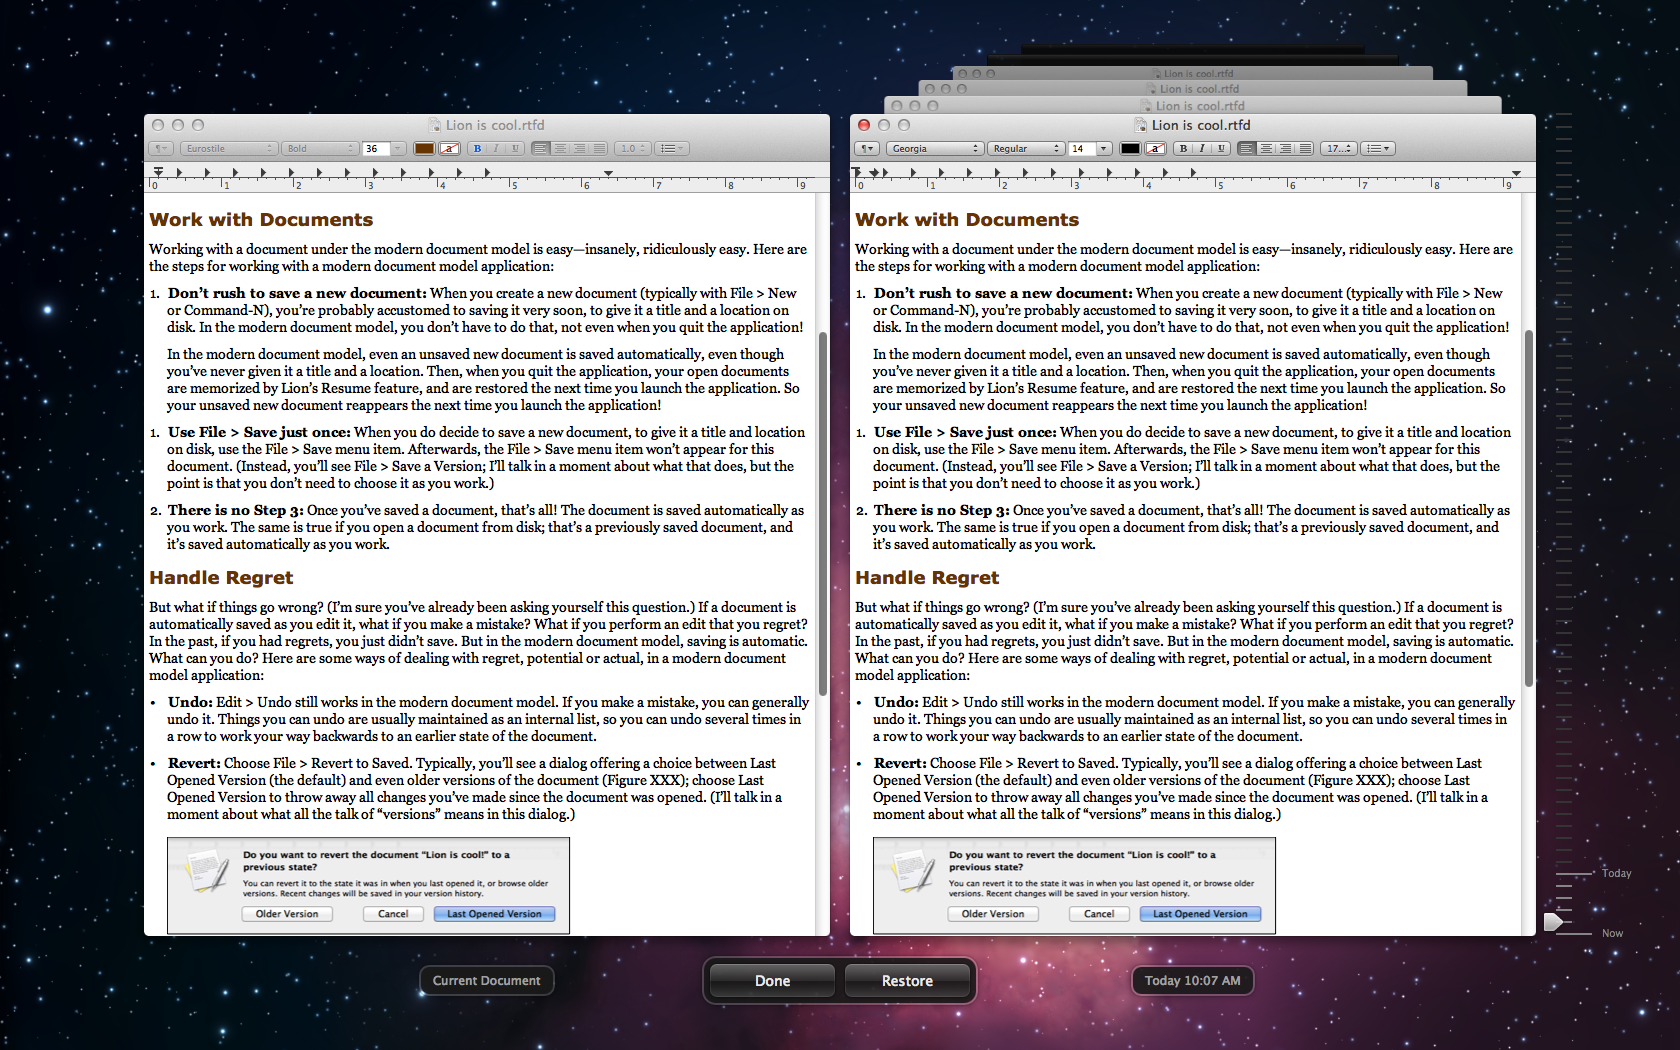 The Very Model of a Modern Mountain Lion Document - TidBITS